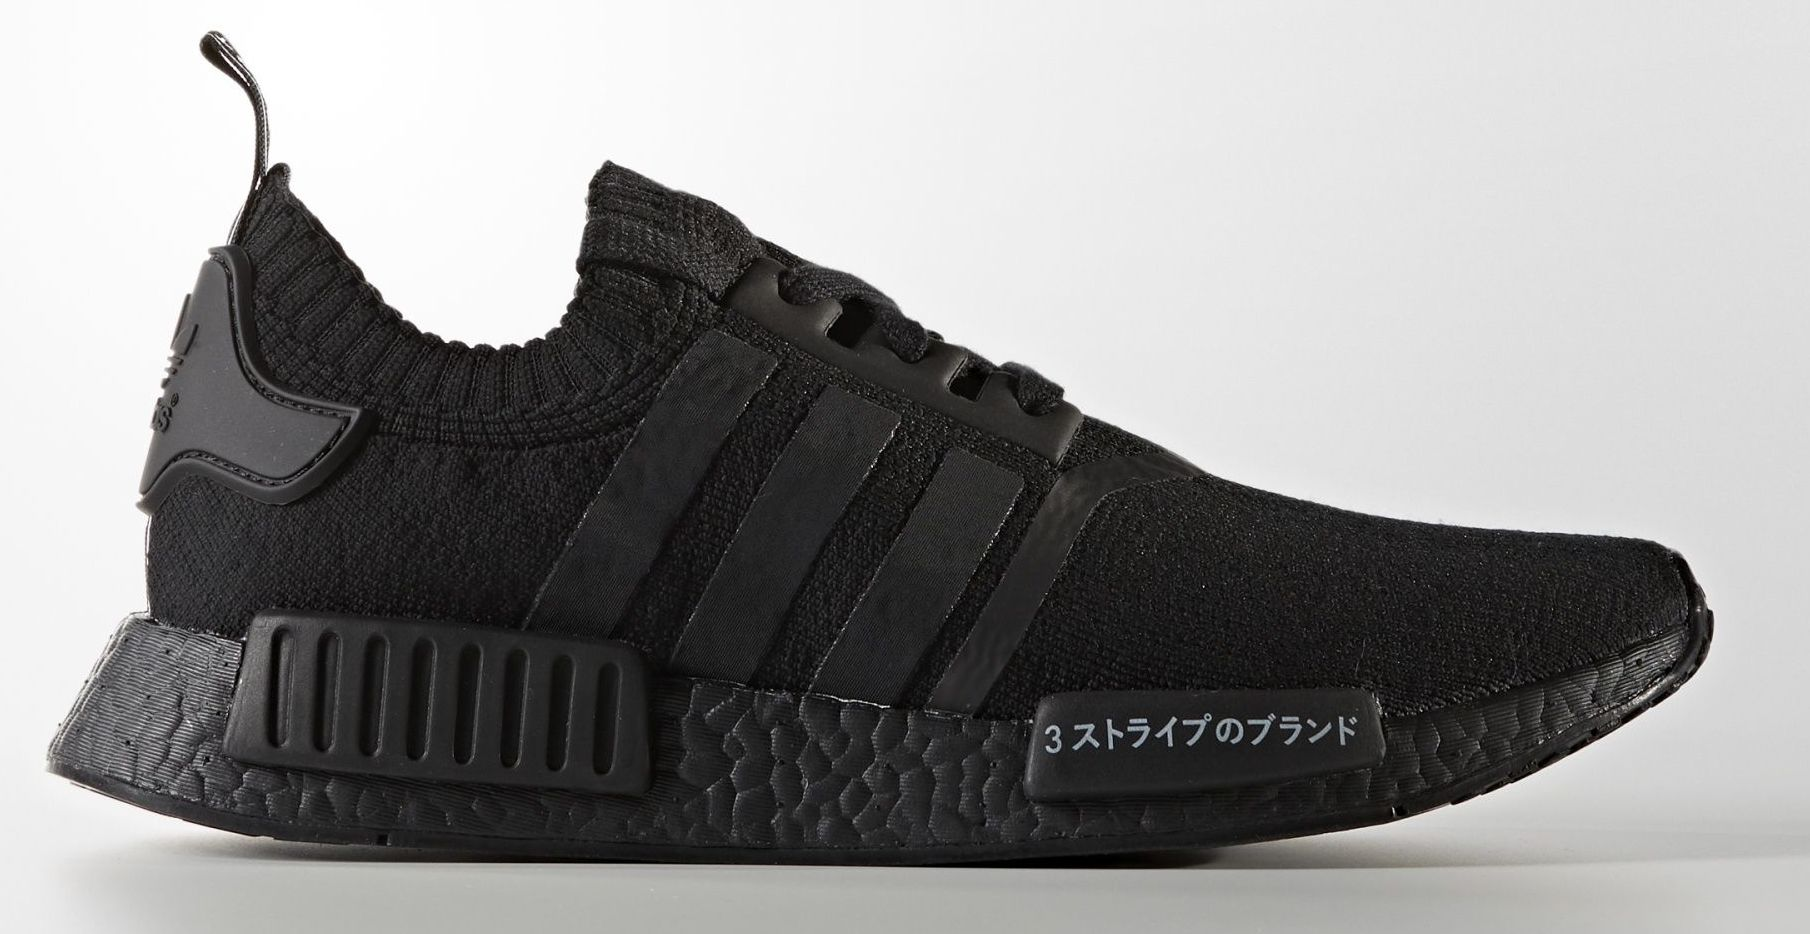 be89327e 'Japan Pack' Adidas NMDs in Triple White and Triple Black Release on Aug. 11